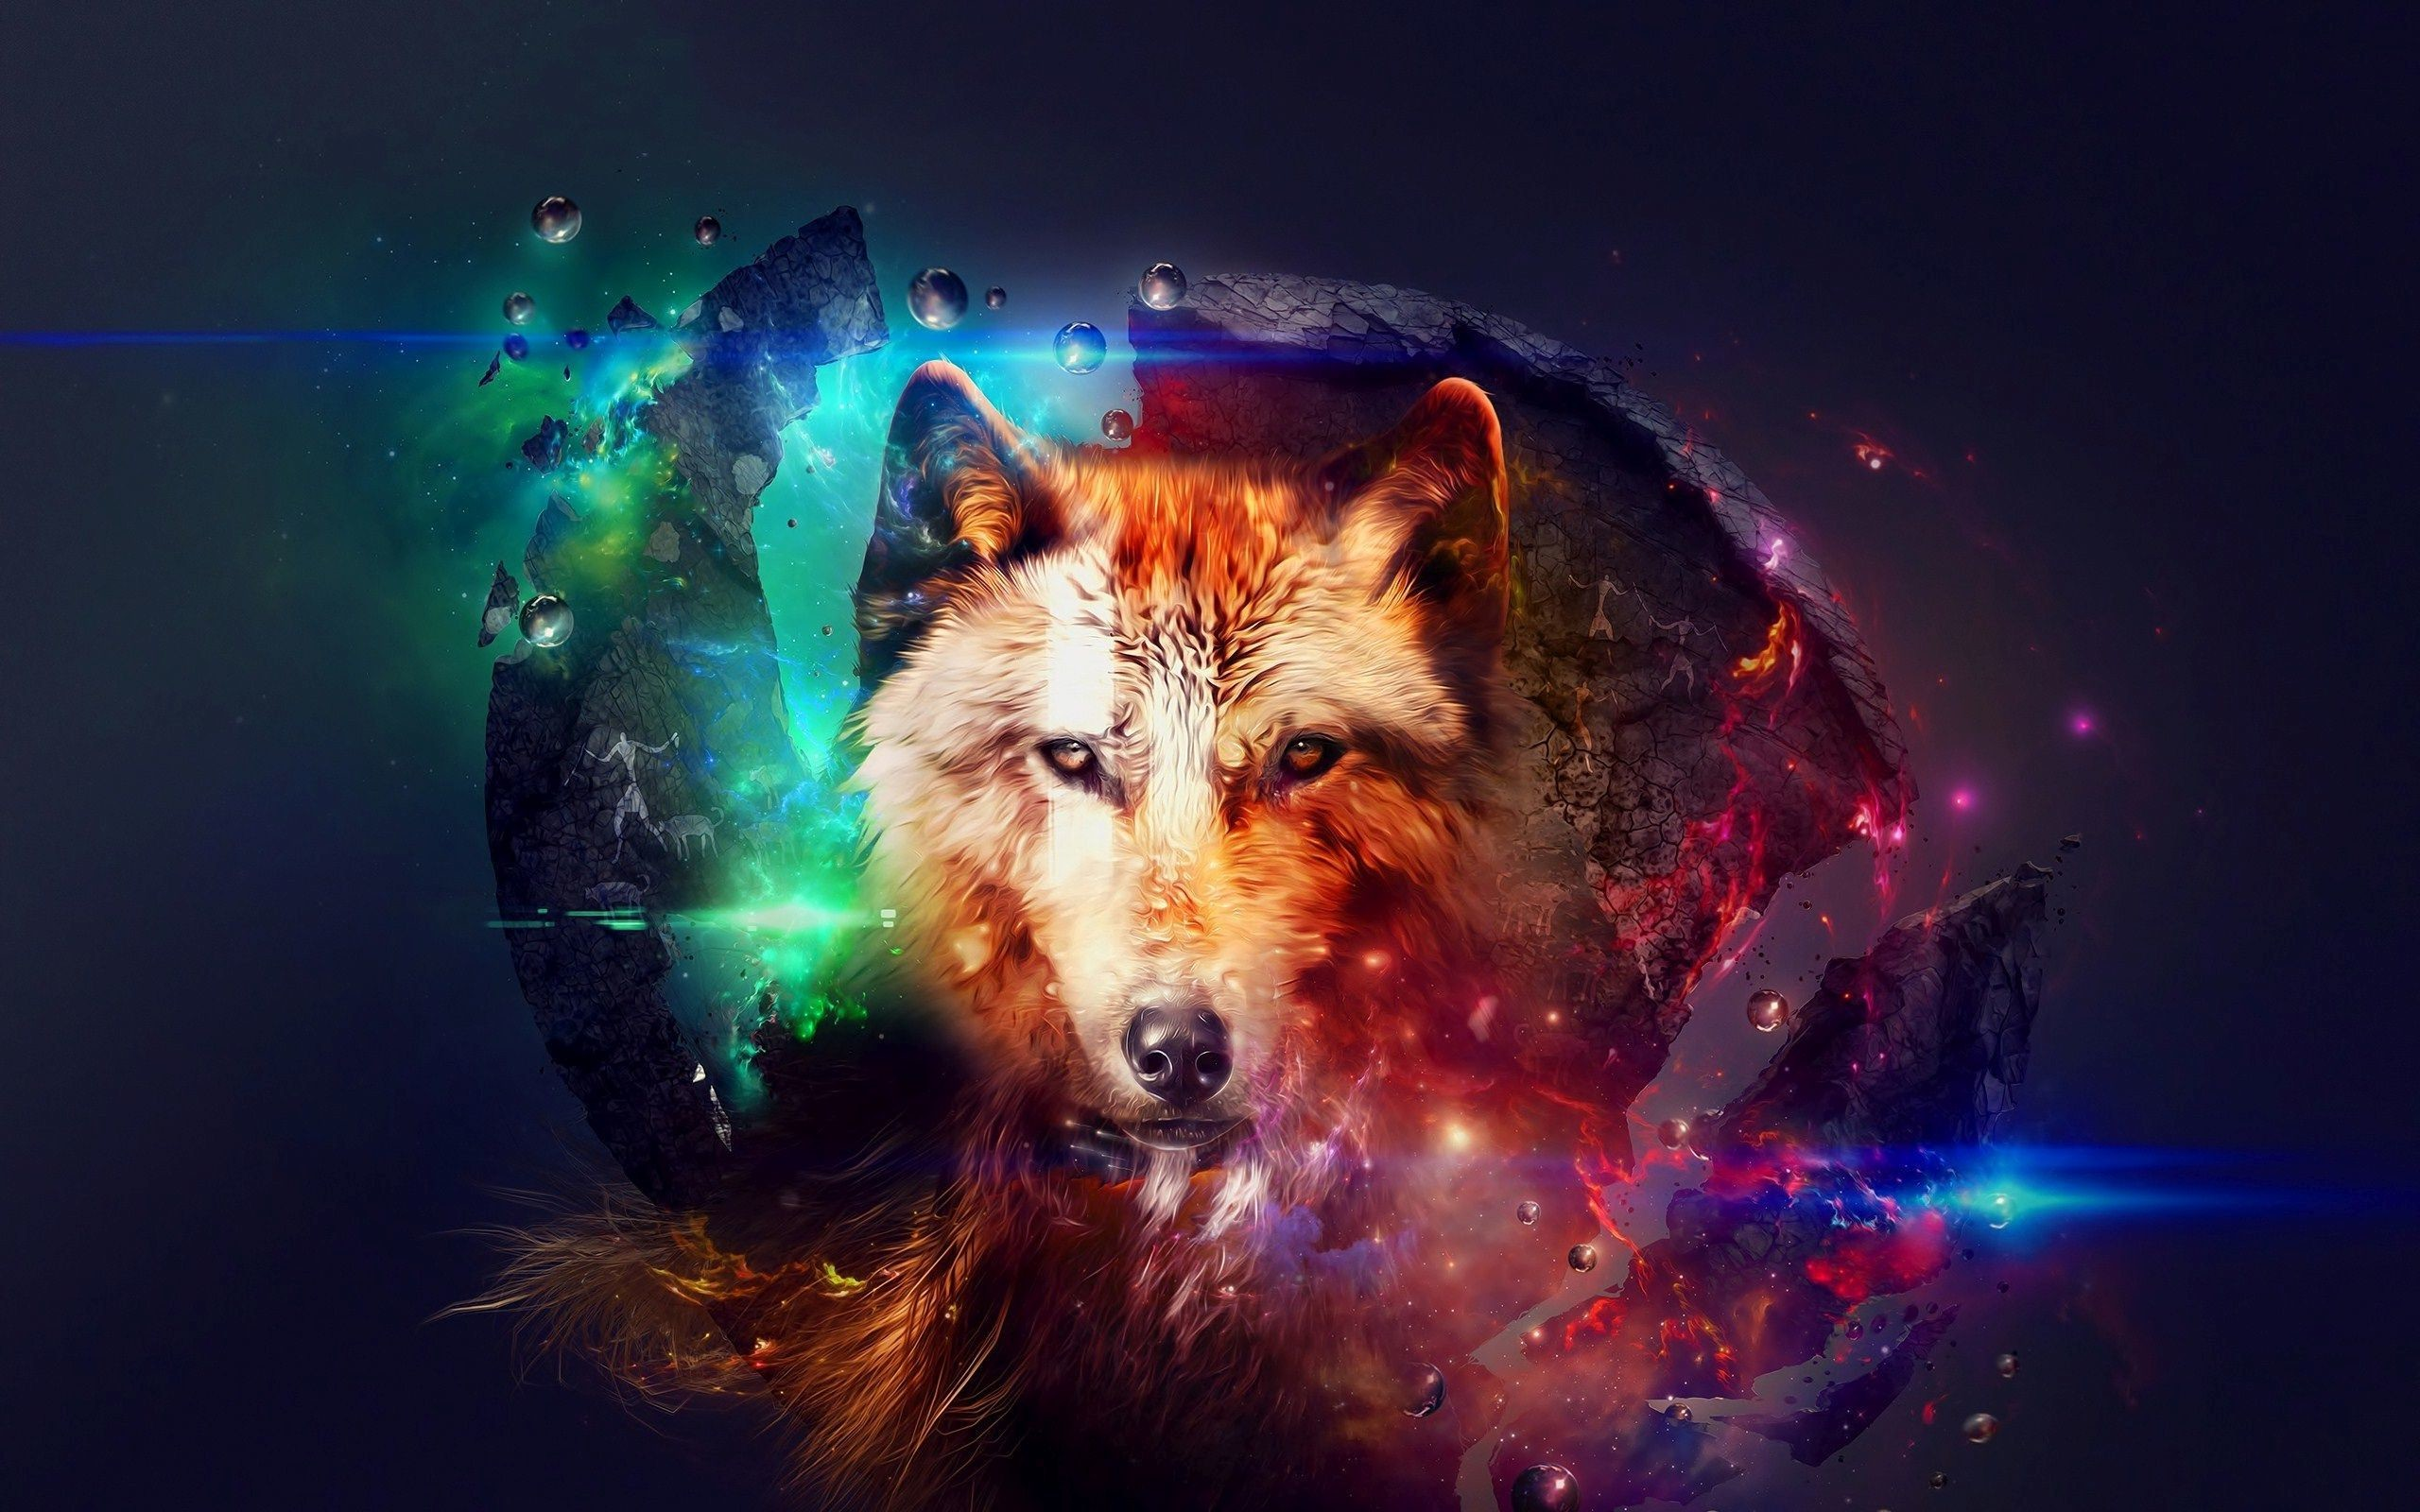 2560x1600 ... Wolf in space HD Wallpaper